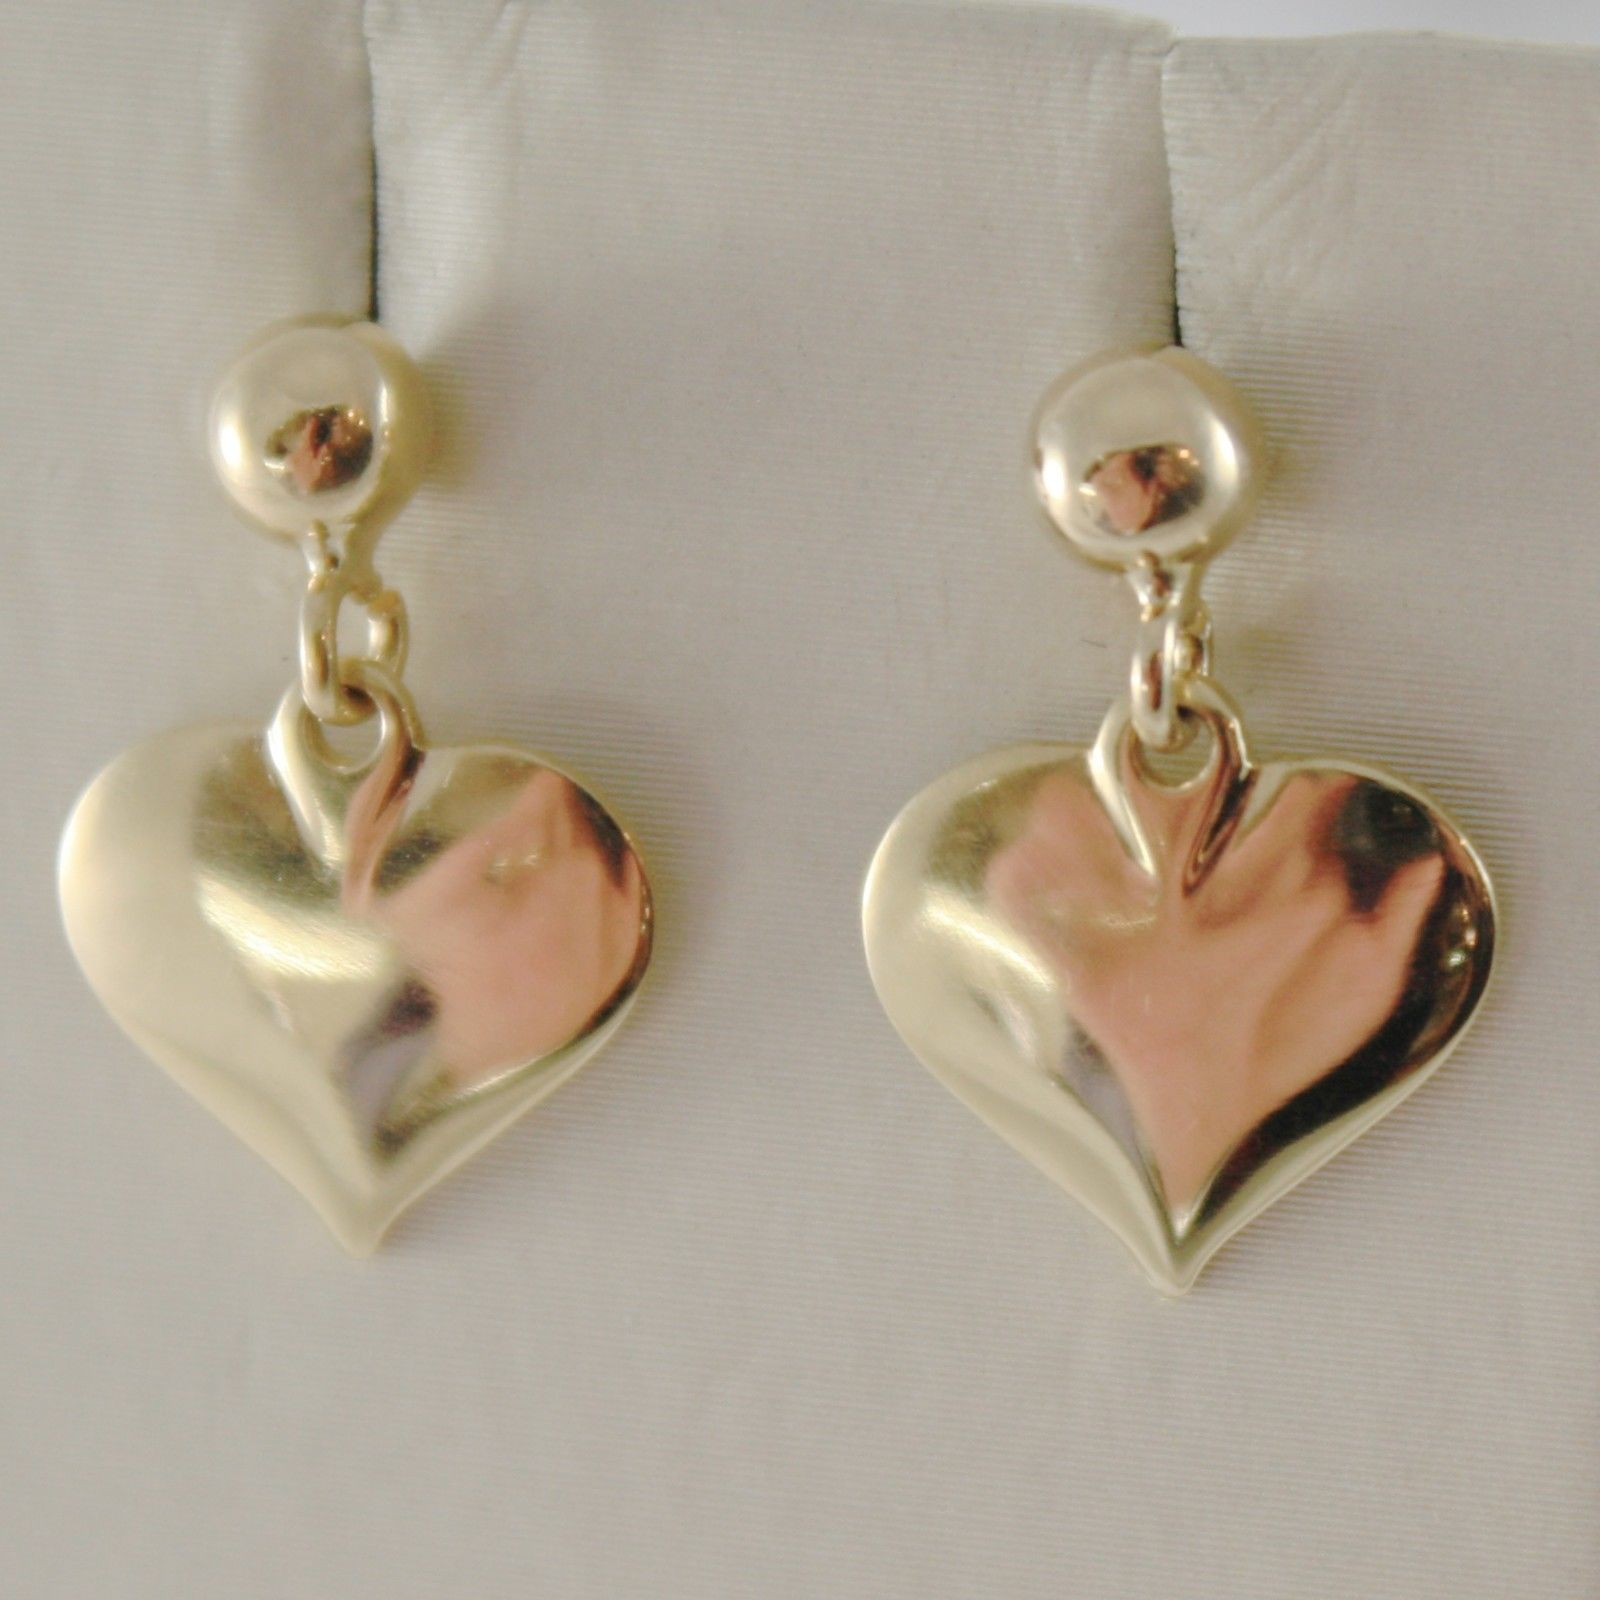 18K YELLOW GOLD HEART HEARTS PENDANT EARRINGS WITH BALLS, SPHERE,  MADE IN ITALY